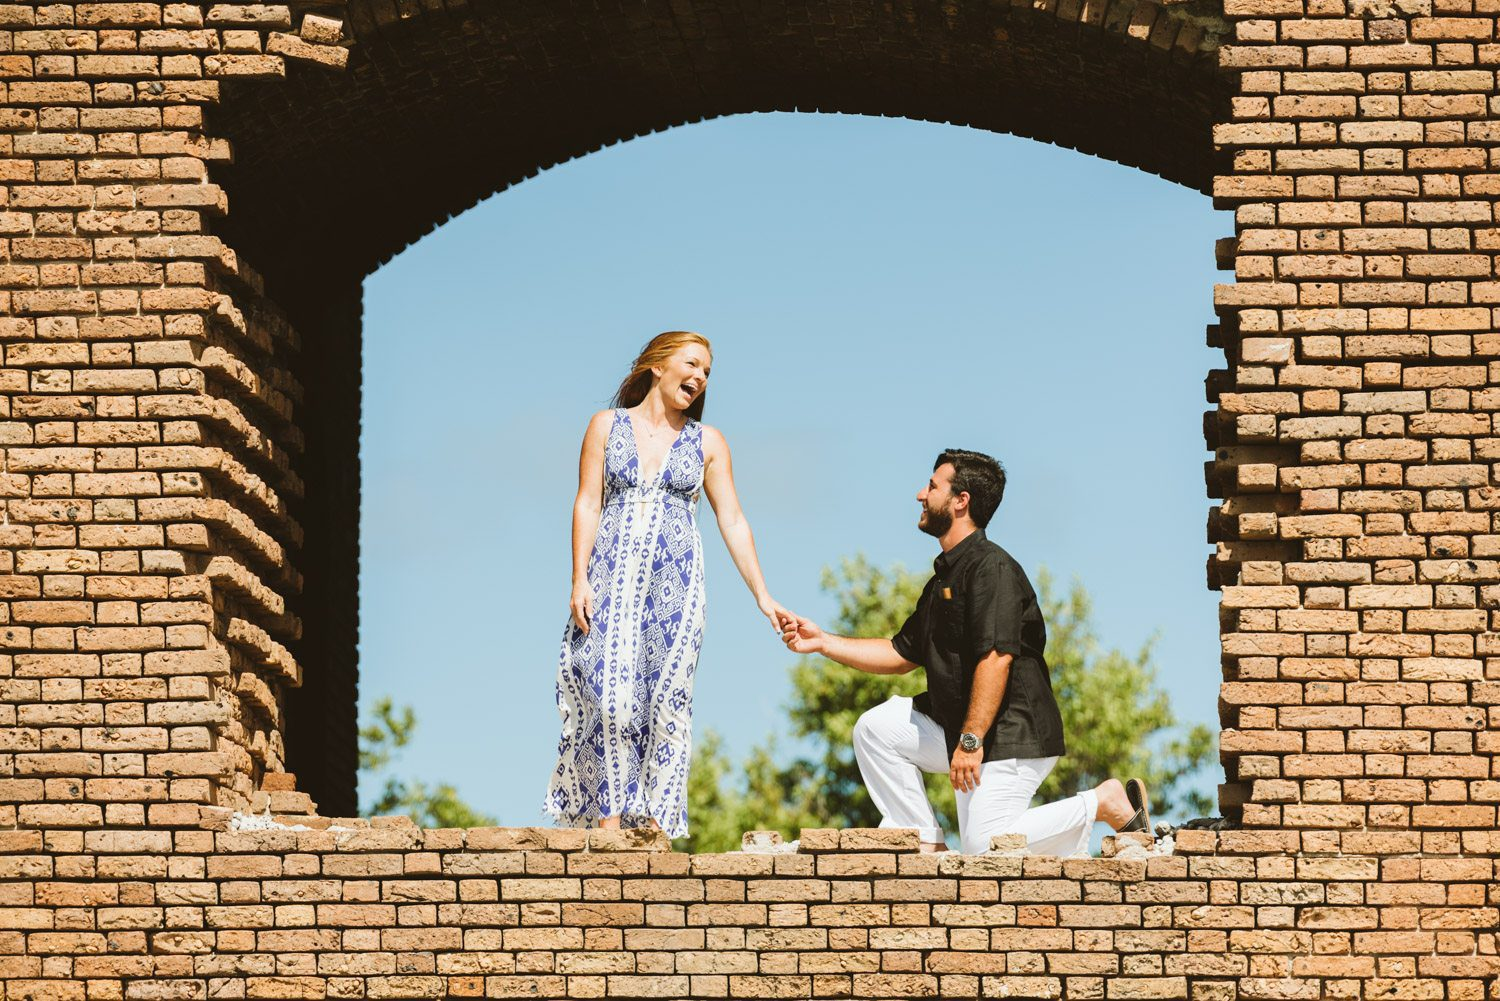 Katherine Oscar Engagement Photos Dry Tortugas 29 - Island Adventure Engagement Session - Dry Tortugas National Park and Fort Jefferson